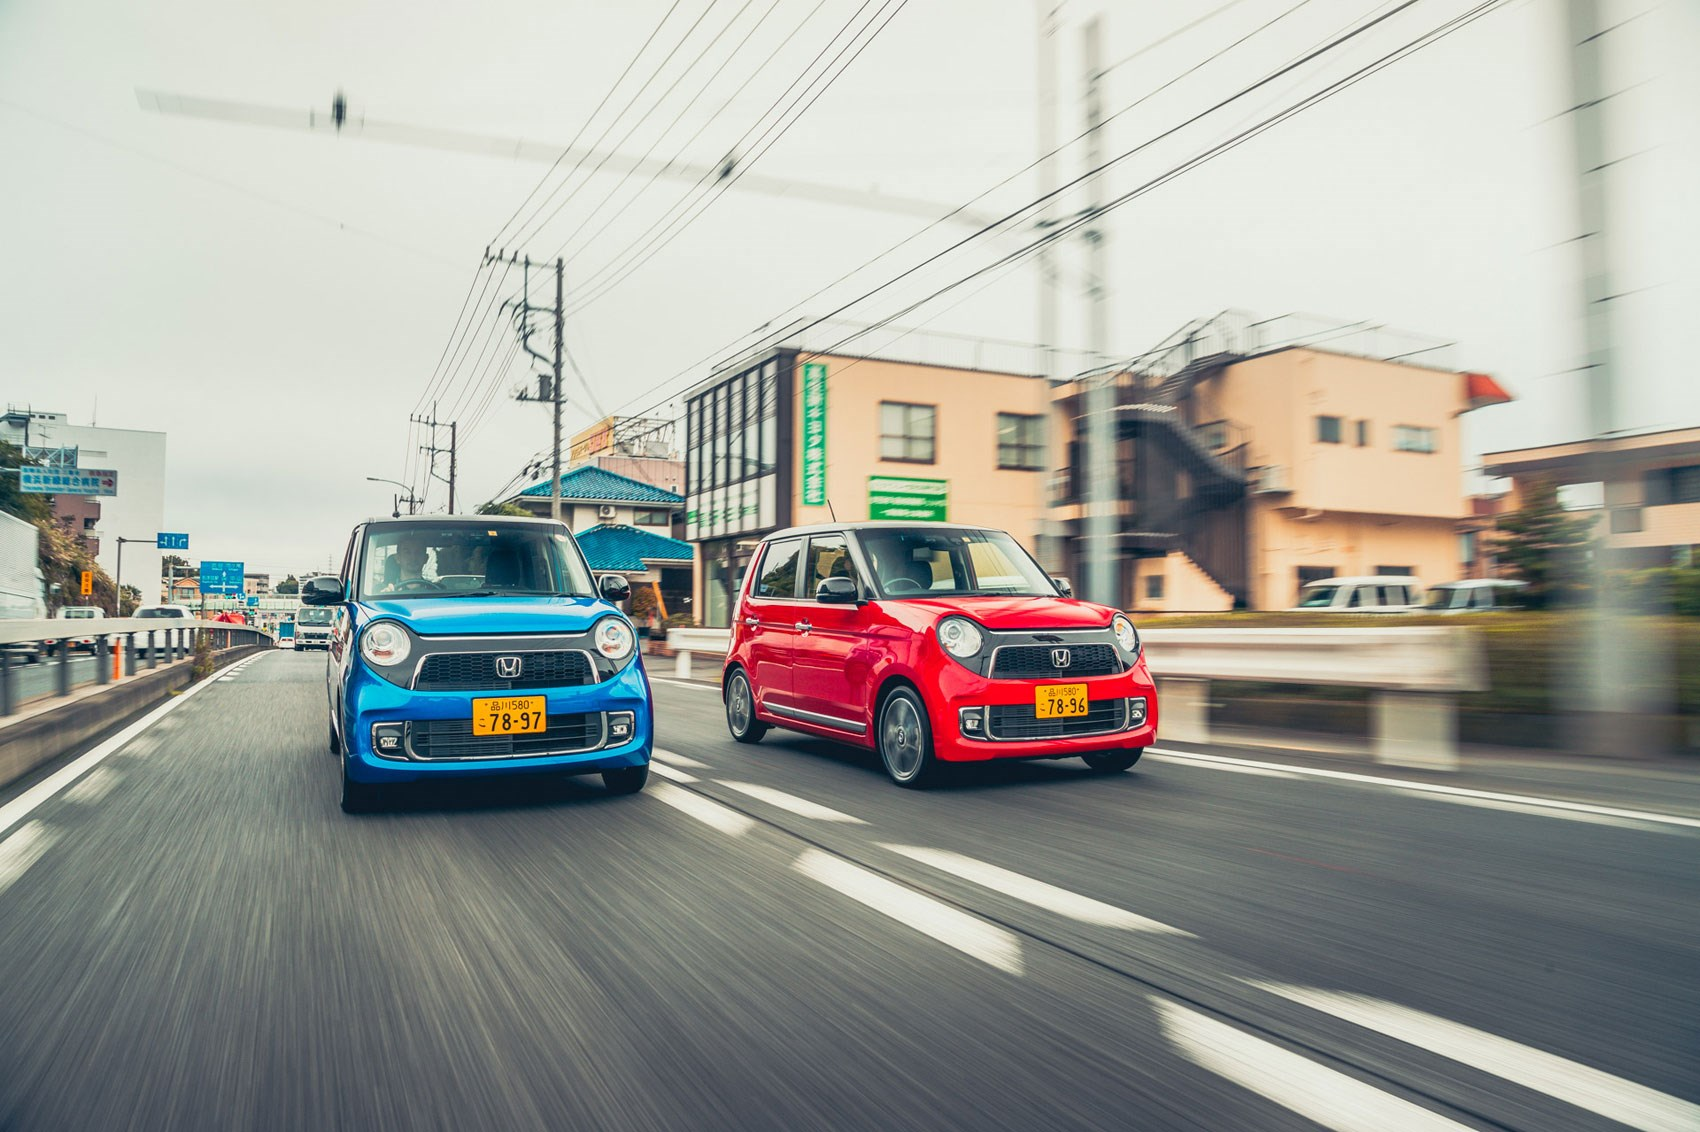 5 things you learn driving a honda none kei car in tokyo